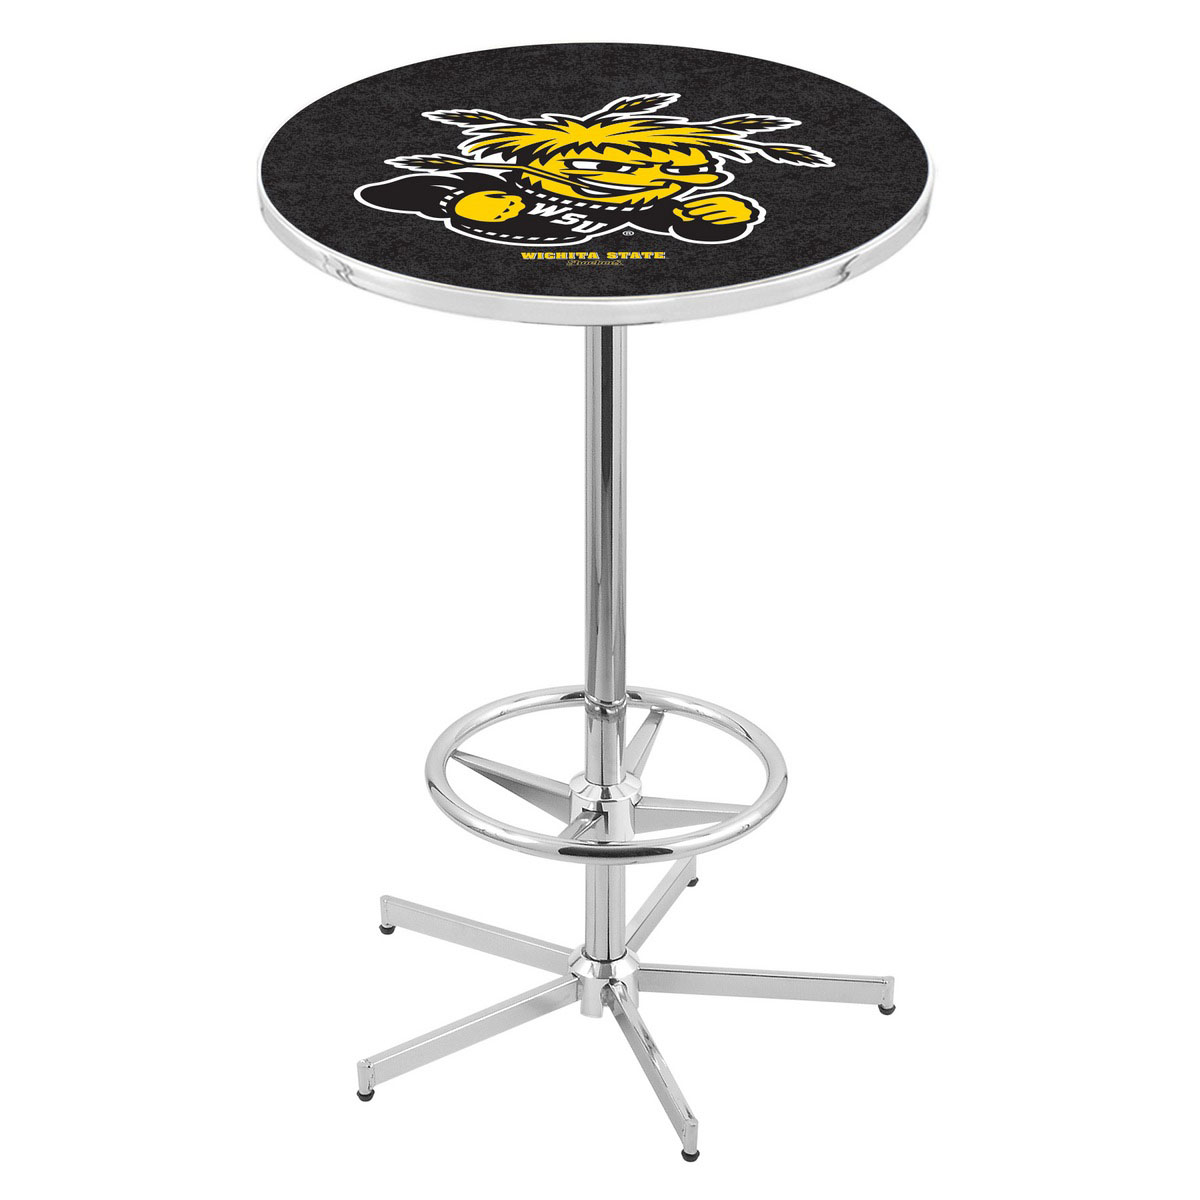 Special Chrome Wichita State Pub Table Product Photo